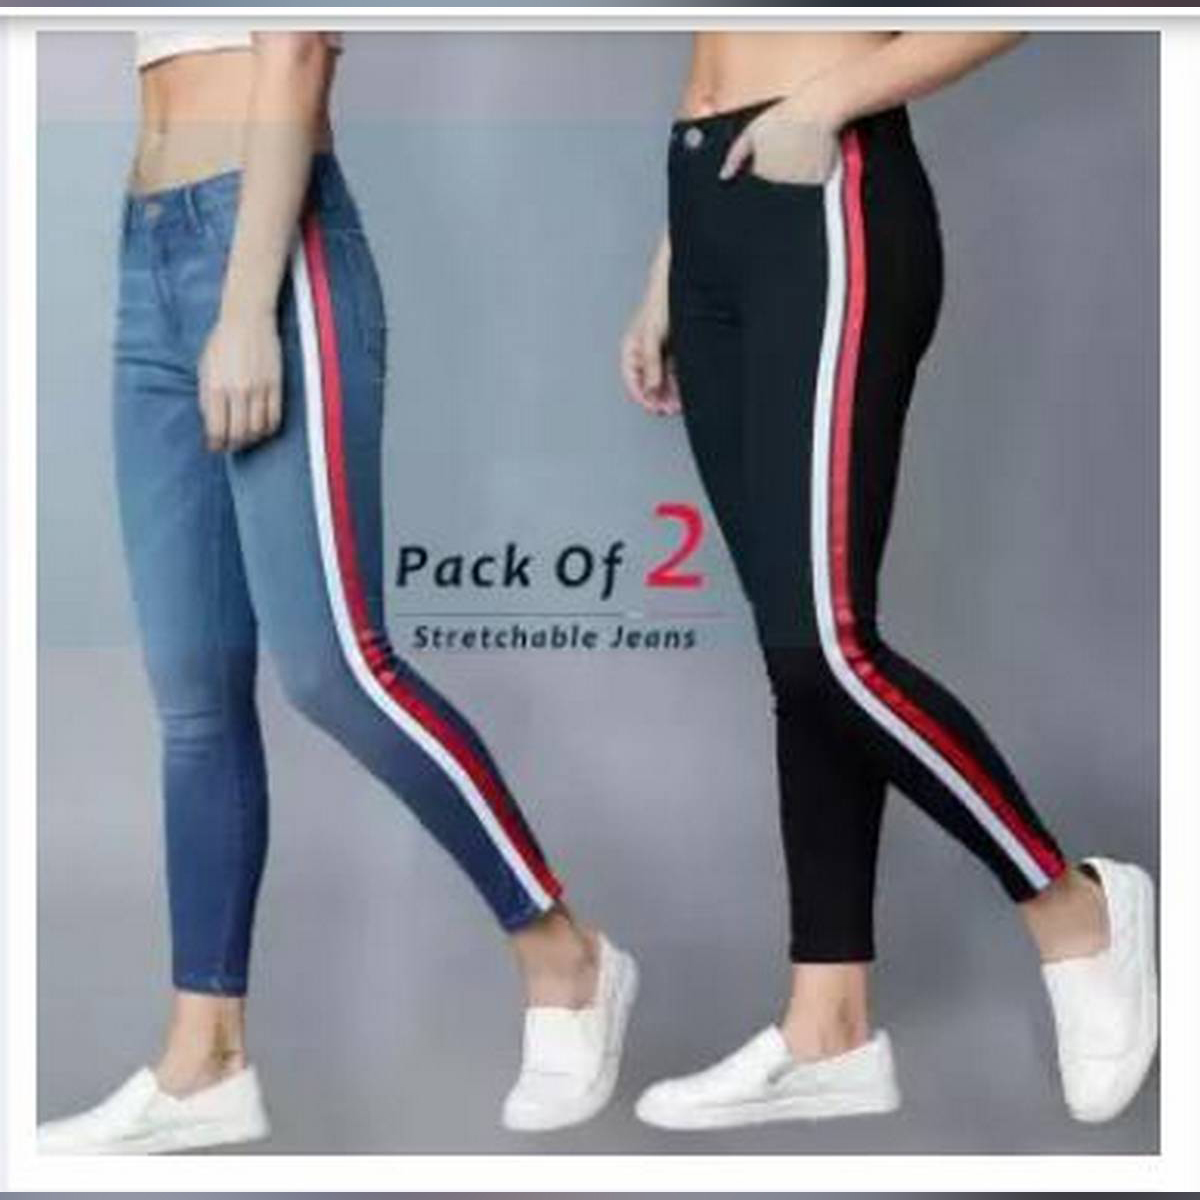 Pack Of 2 Ladies striped jeans SIde Tape Fasion AW